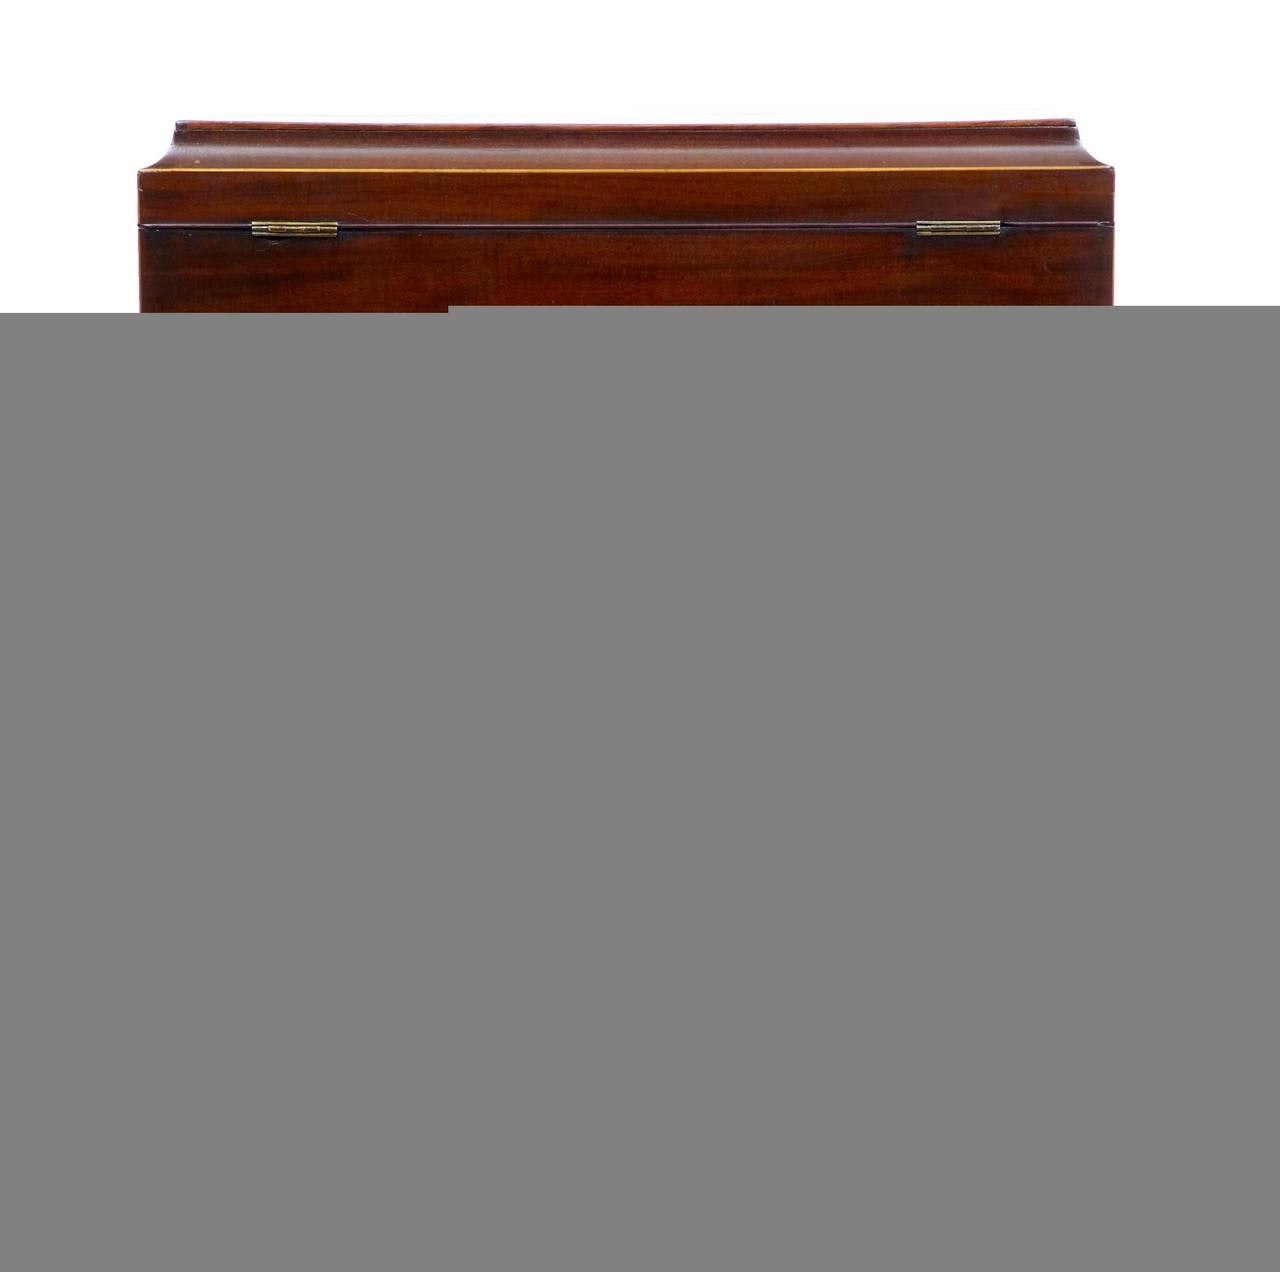 Woodwork Early 20th Century Mahogany Wine Cooler Cellarette For Sale